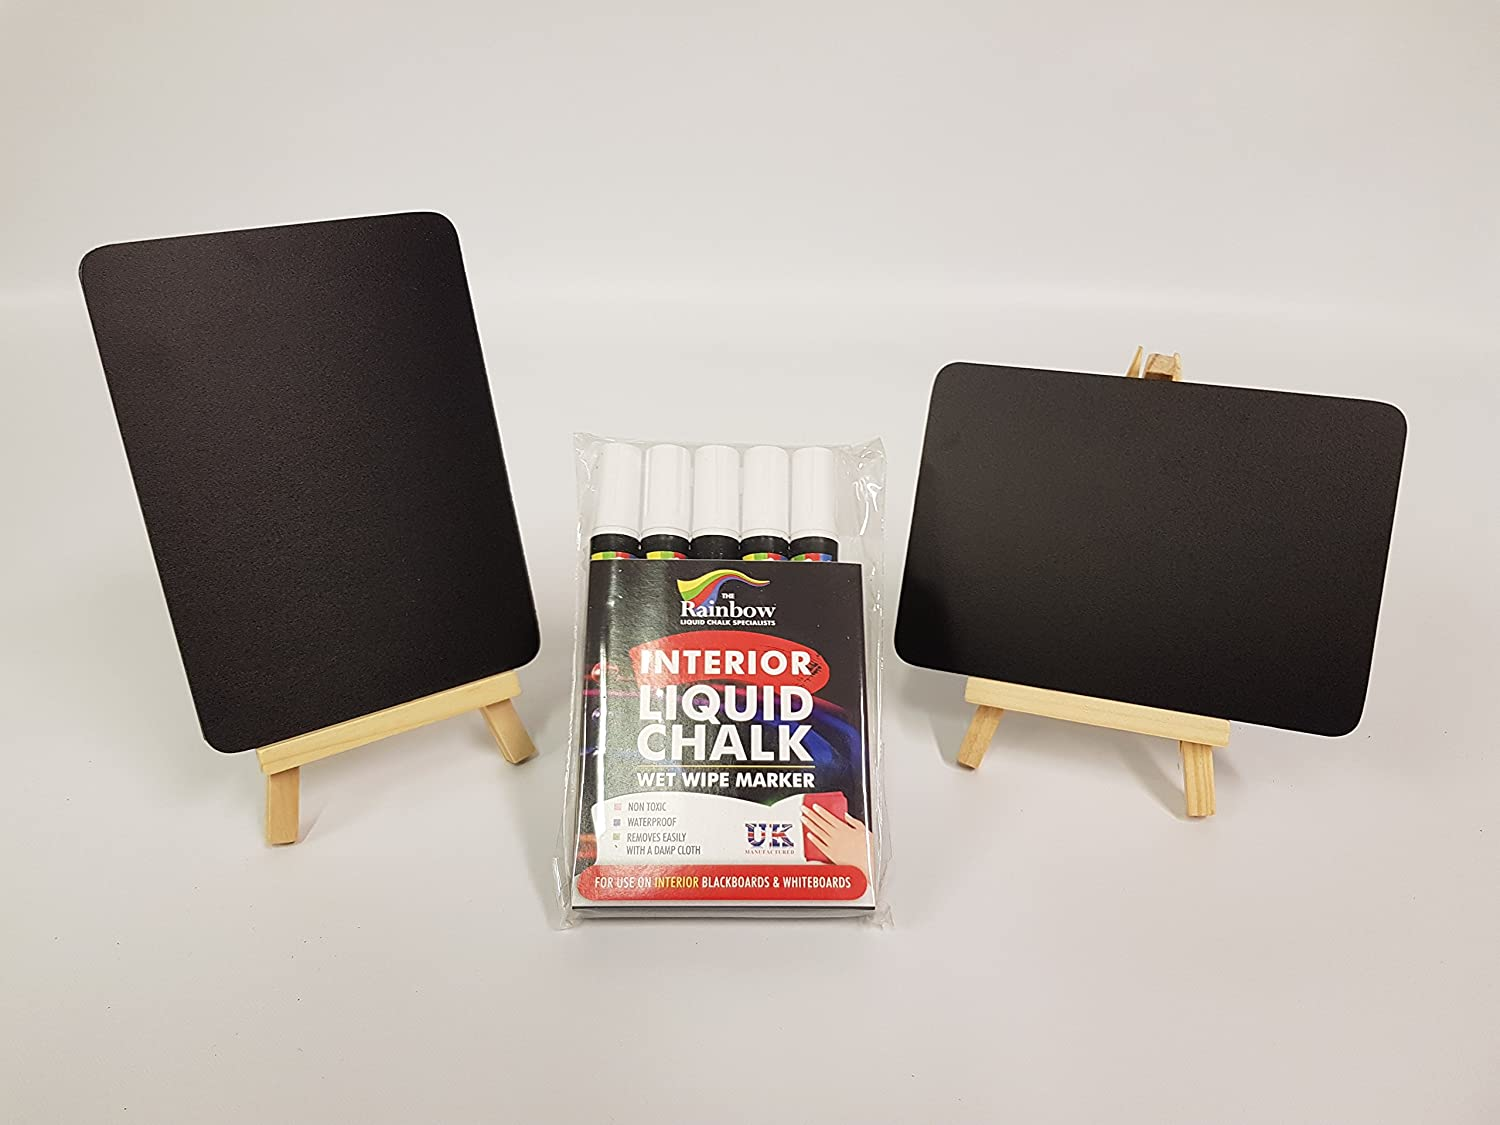 A5 x 6 PLUS A6 x 12 TABLETOP CHALKBOARDS ALL WITH WOODEN EASELS. PLUS A PACK OF 5 WHITE LIQUID CHALK PENS (CODE C38) CHALKBOARDS R US